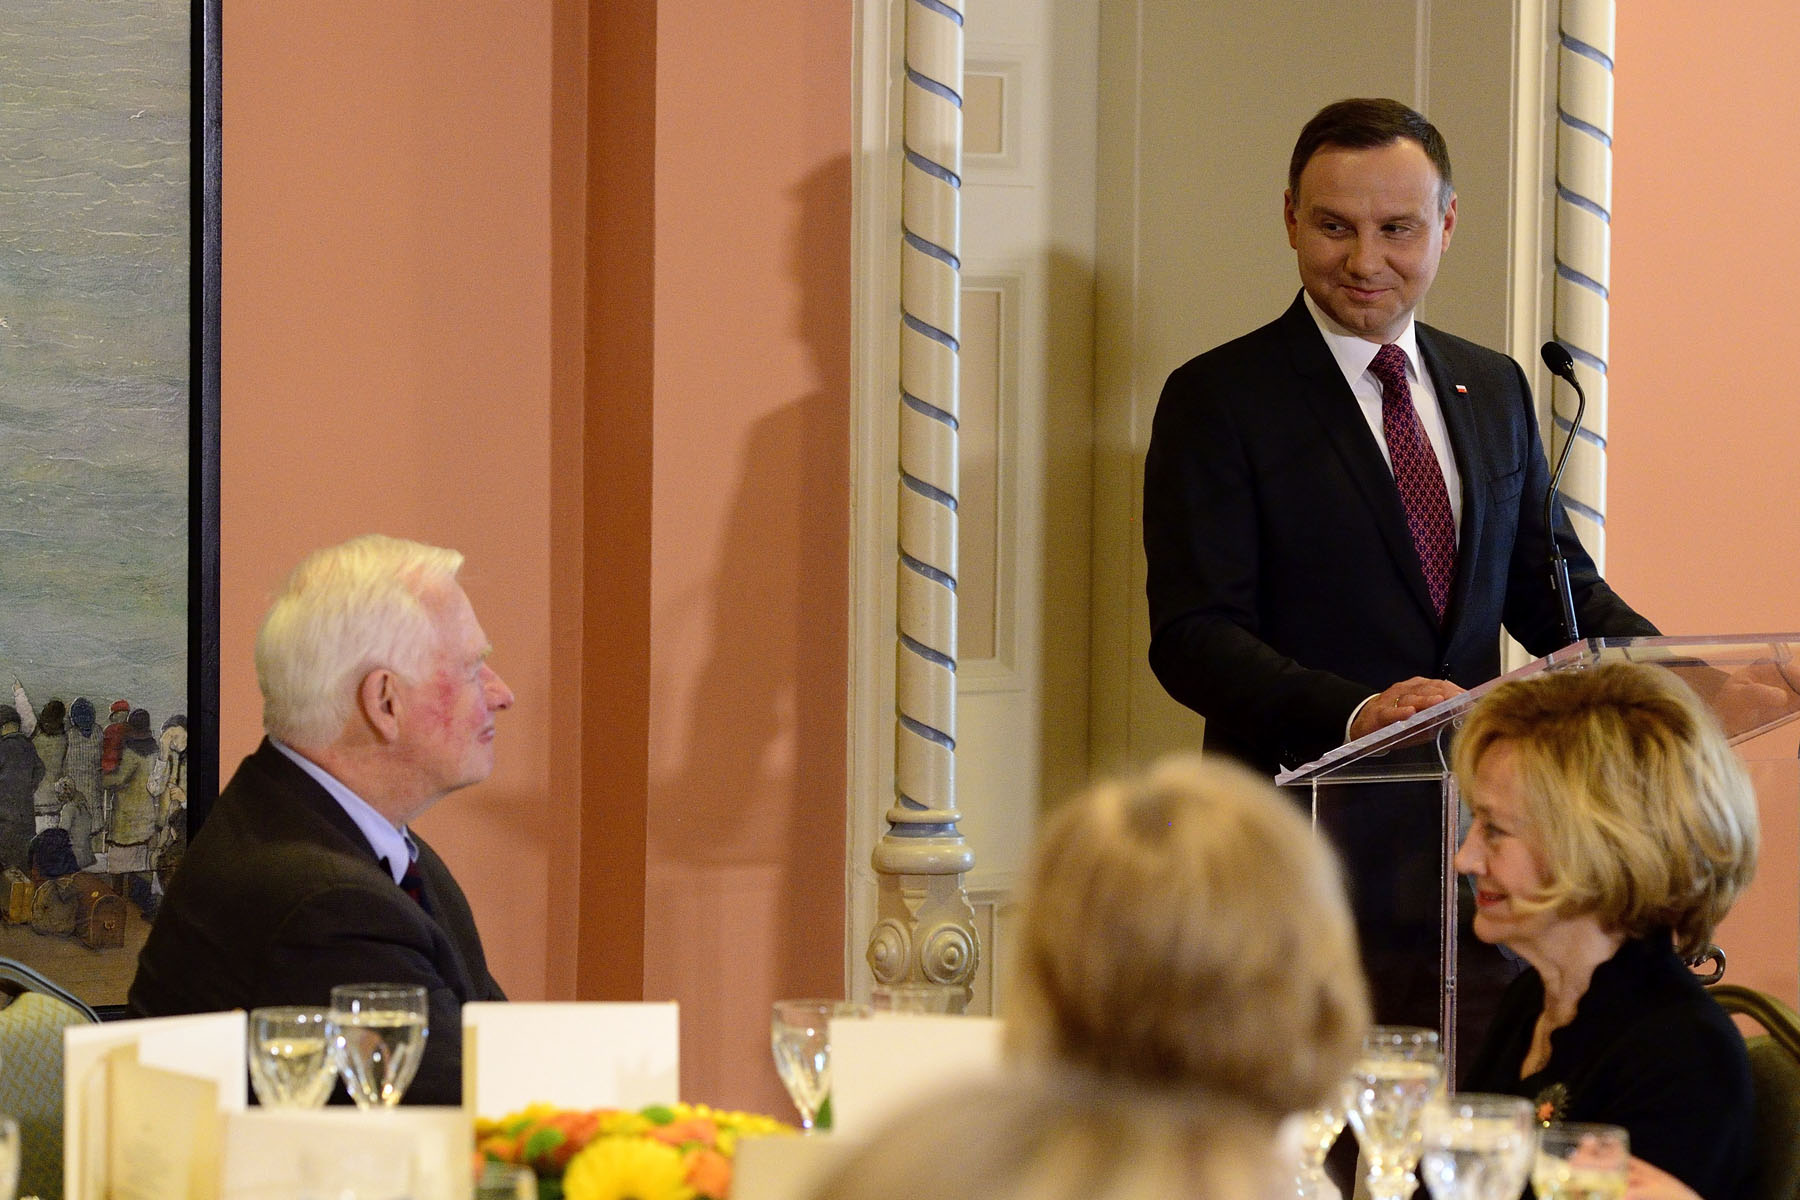 Their Excellencies hosted a working luncheon during which leaders from the private and public sectors talked about trade and innovation. The Governor General and the President delivered remarks on the occasion.